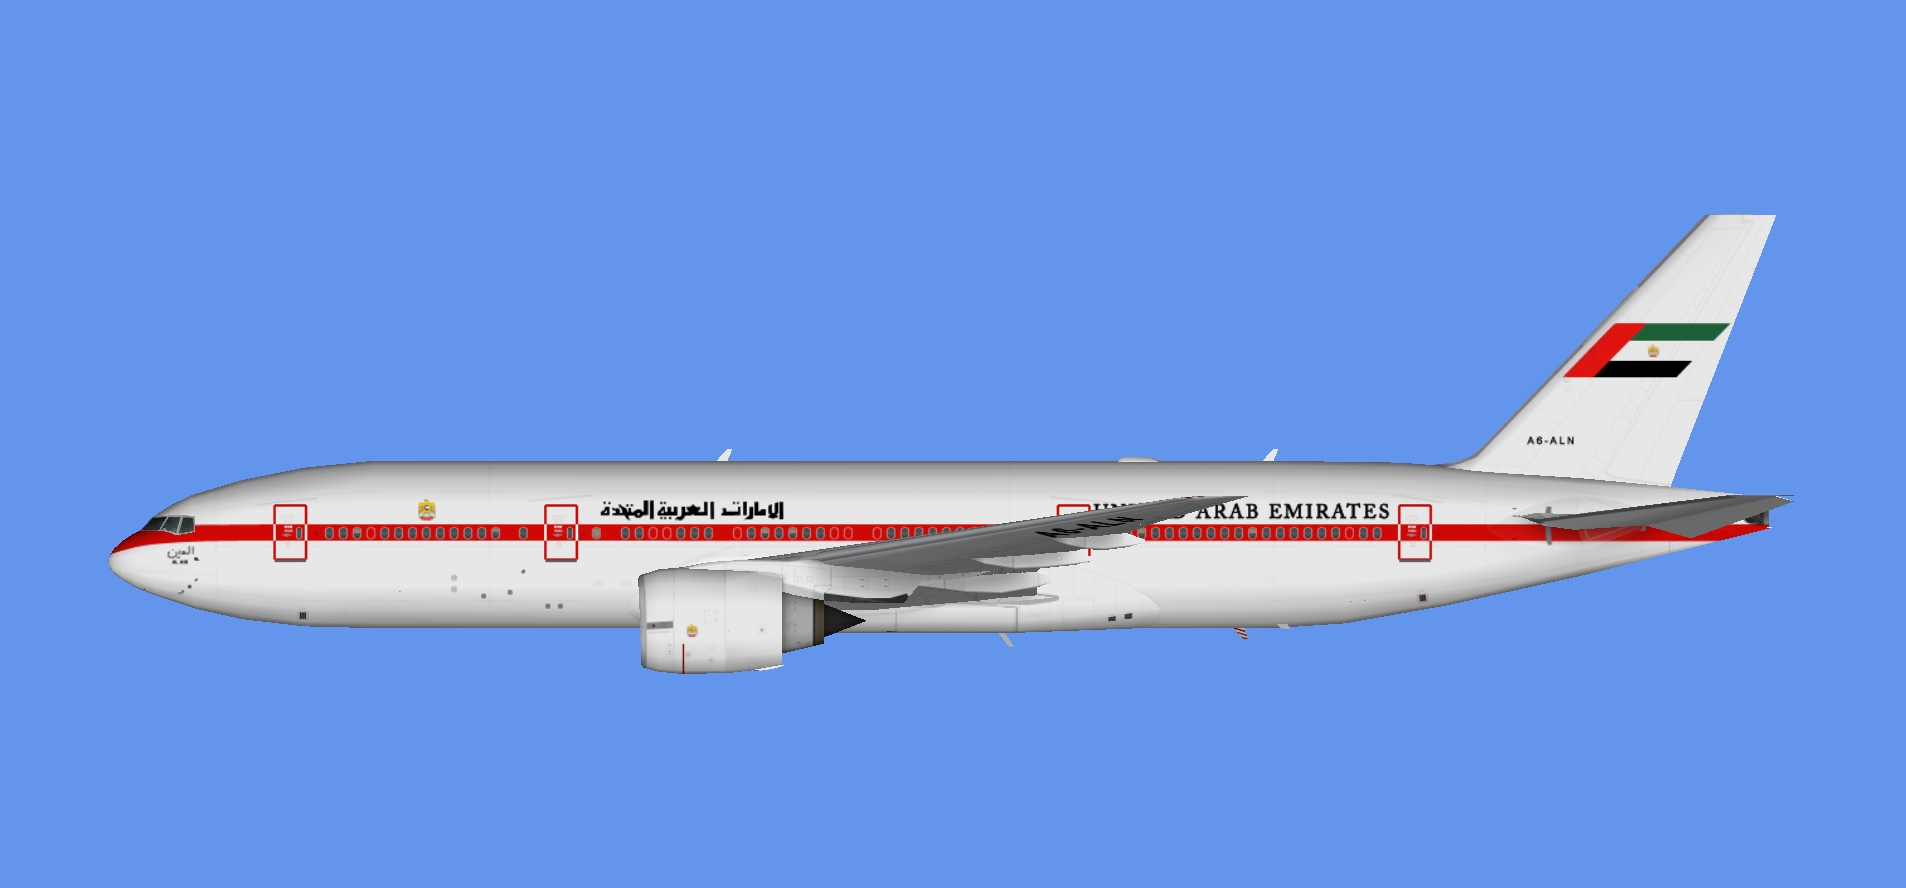 UAE Pres. Flight 777-200 (TFS)